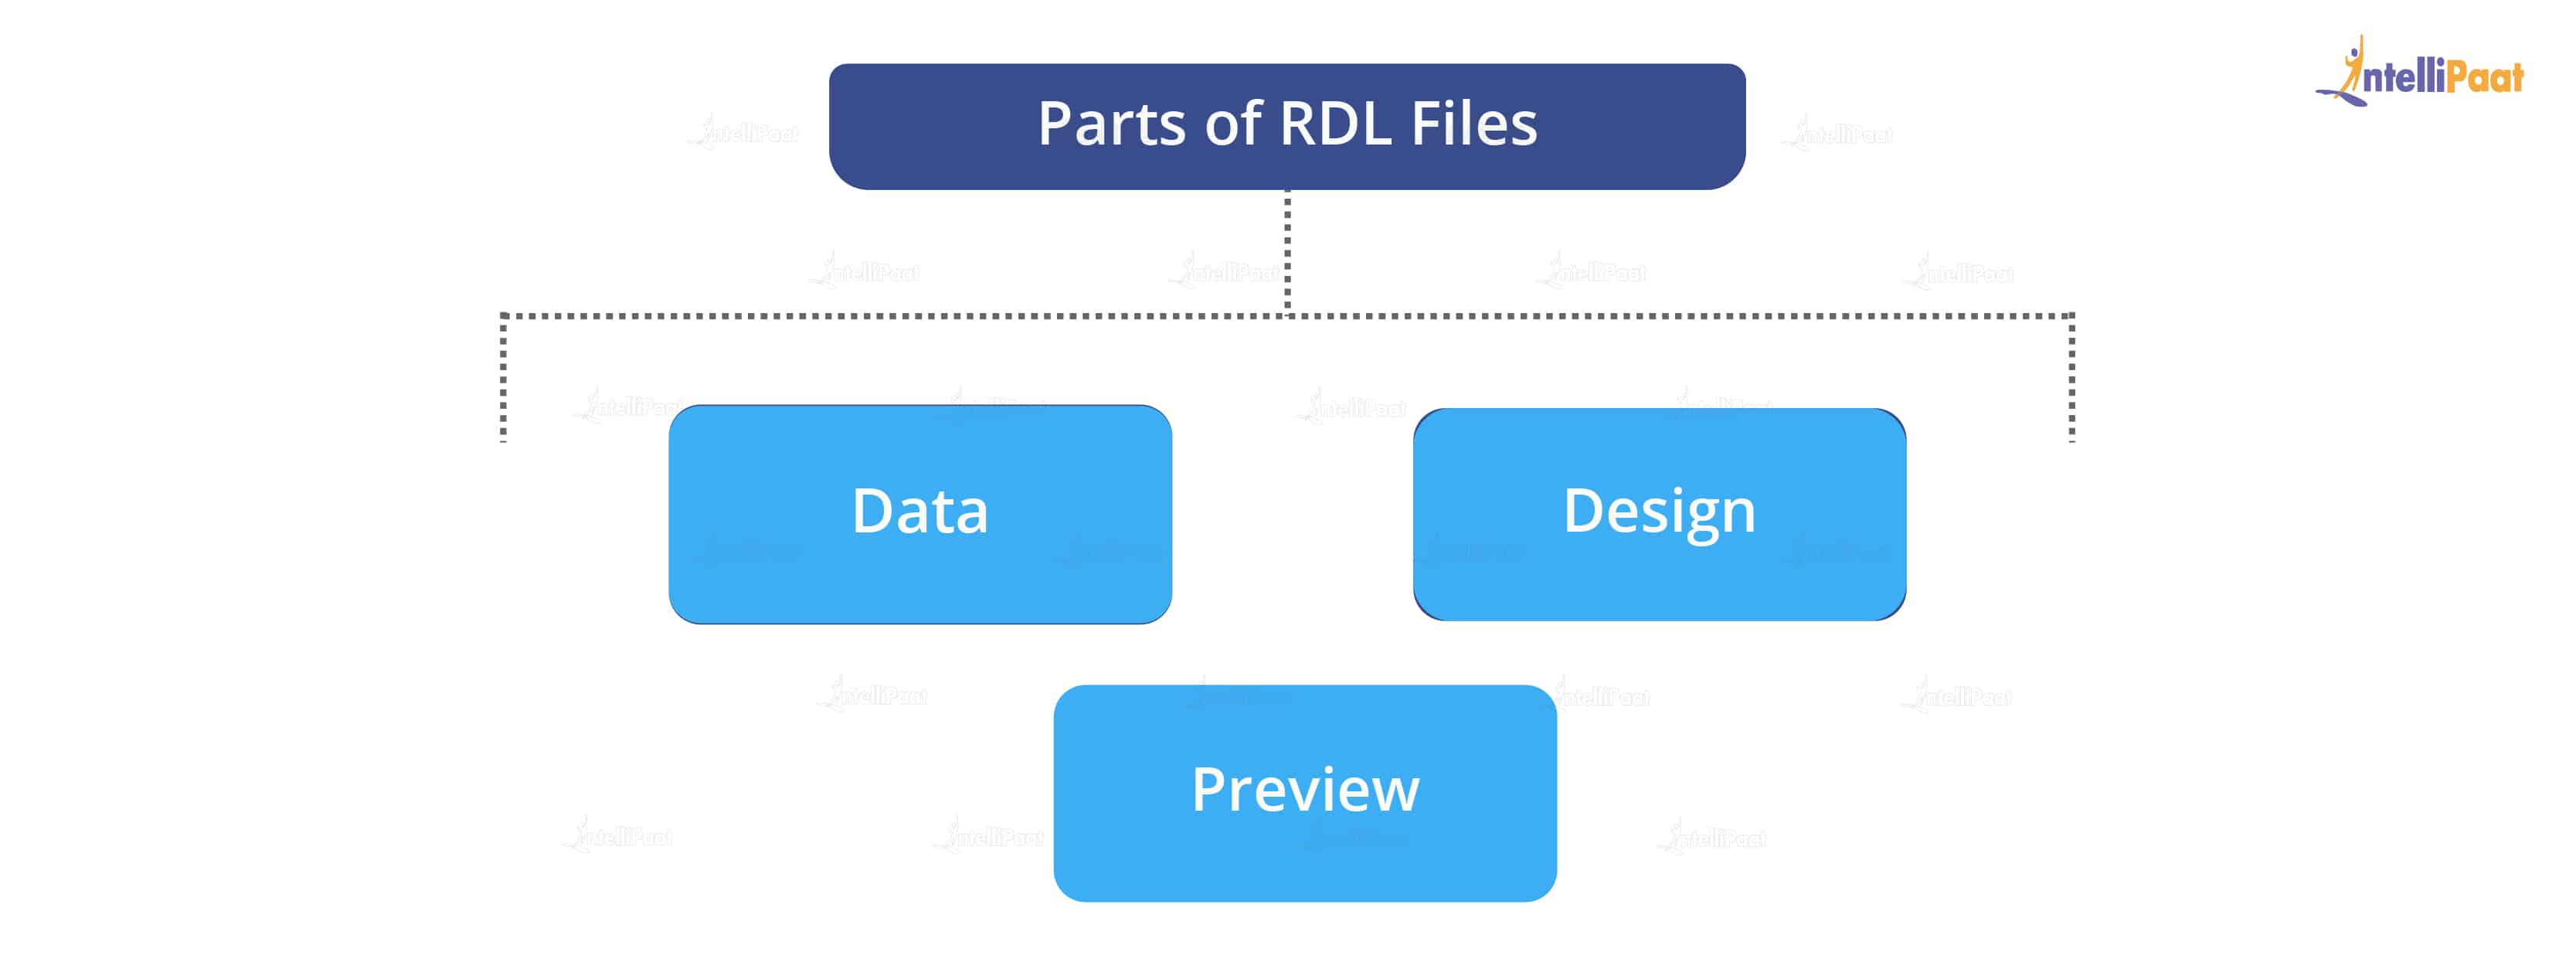 Parts of RDL Files